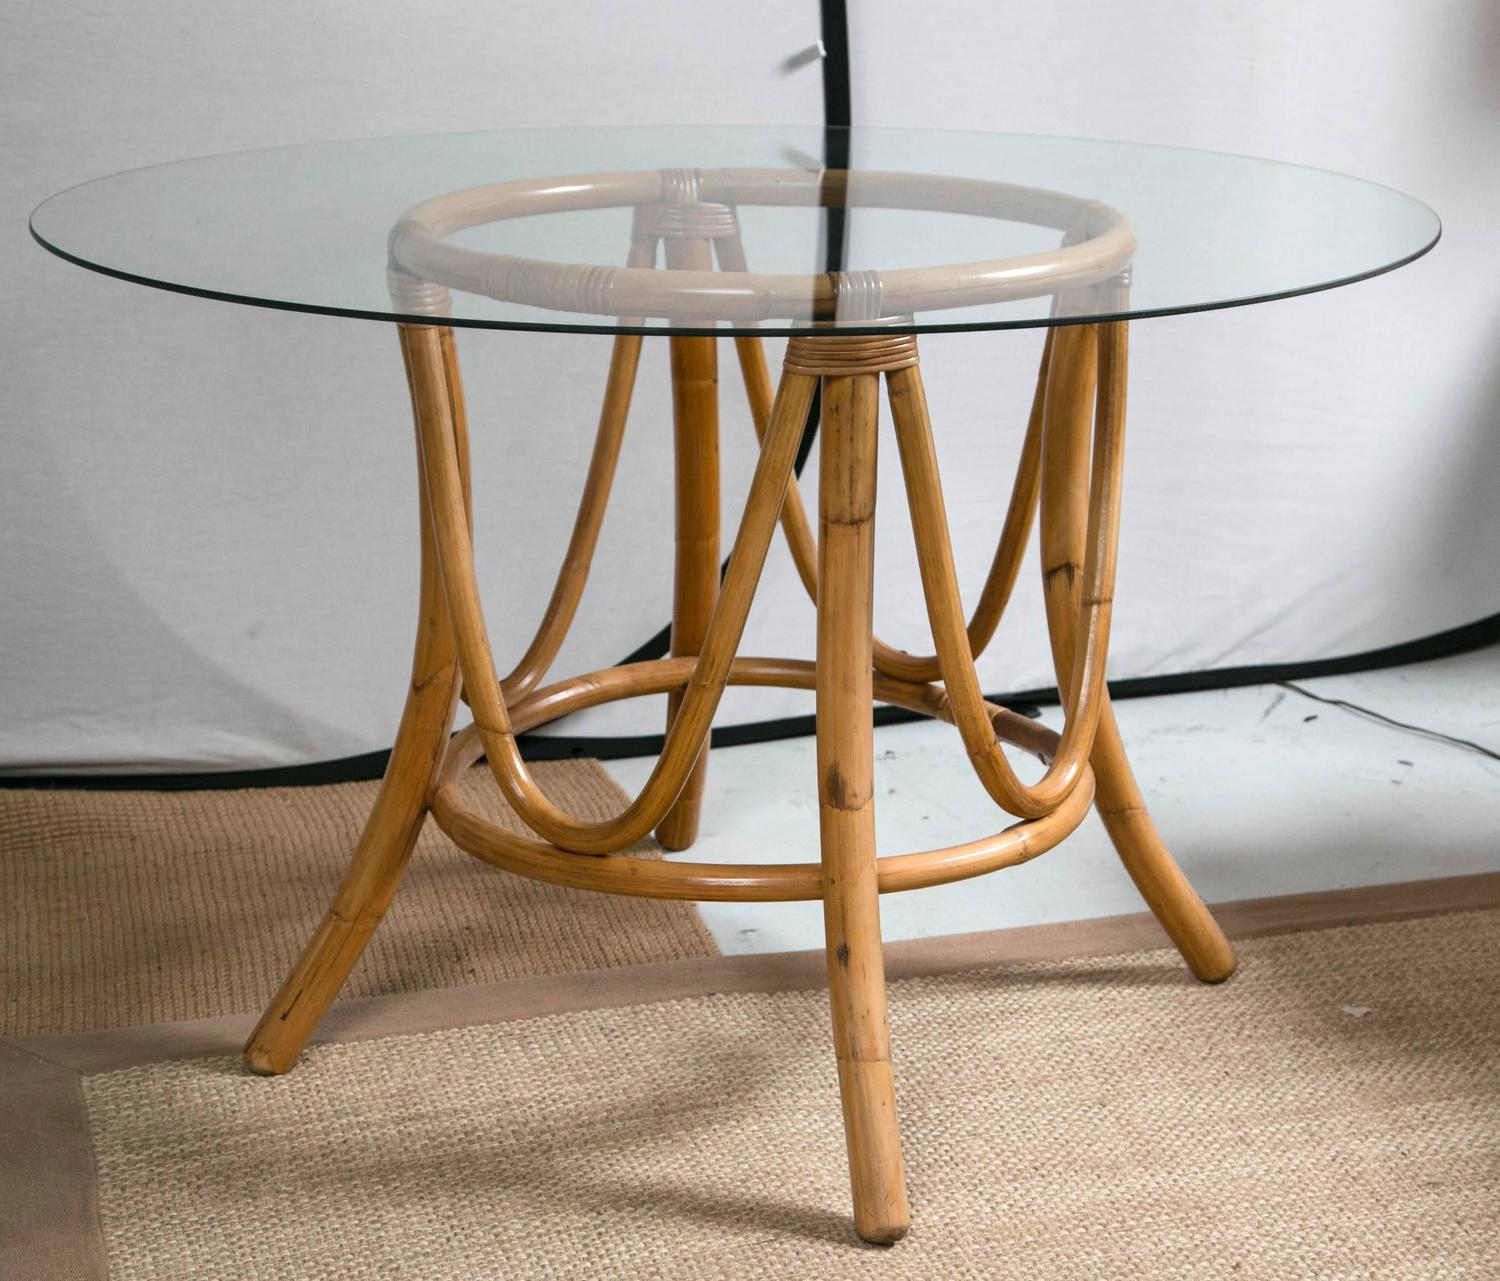 Vintage Bamboo Rattan Round Dining Table and Chairs at  : IMG7810z from www.1stdibs.com size 1500 x 1281 jpeg 198kB